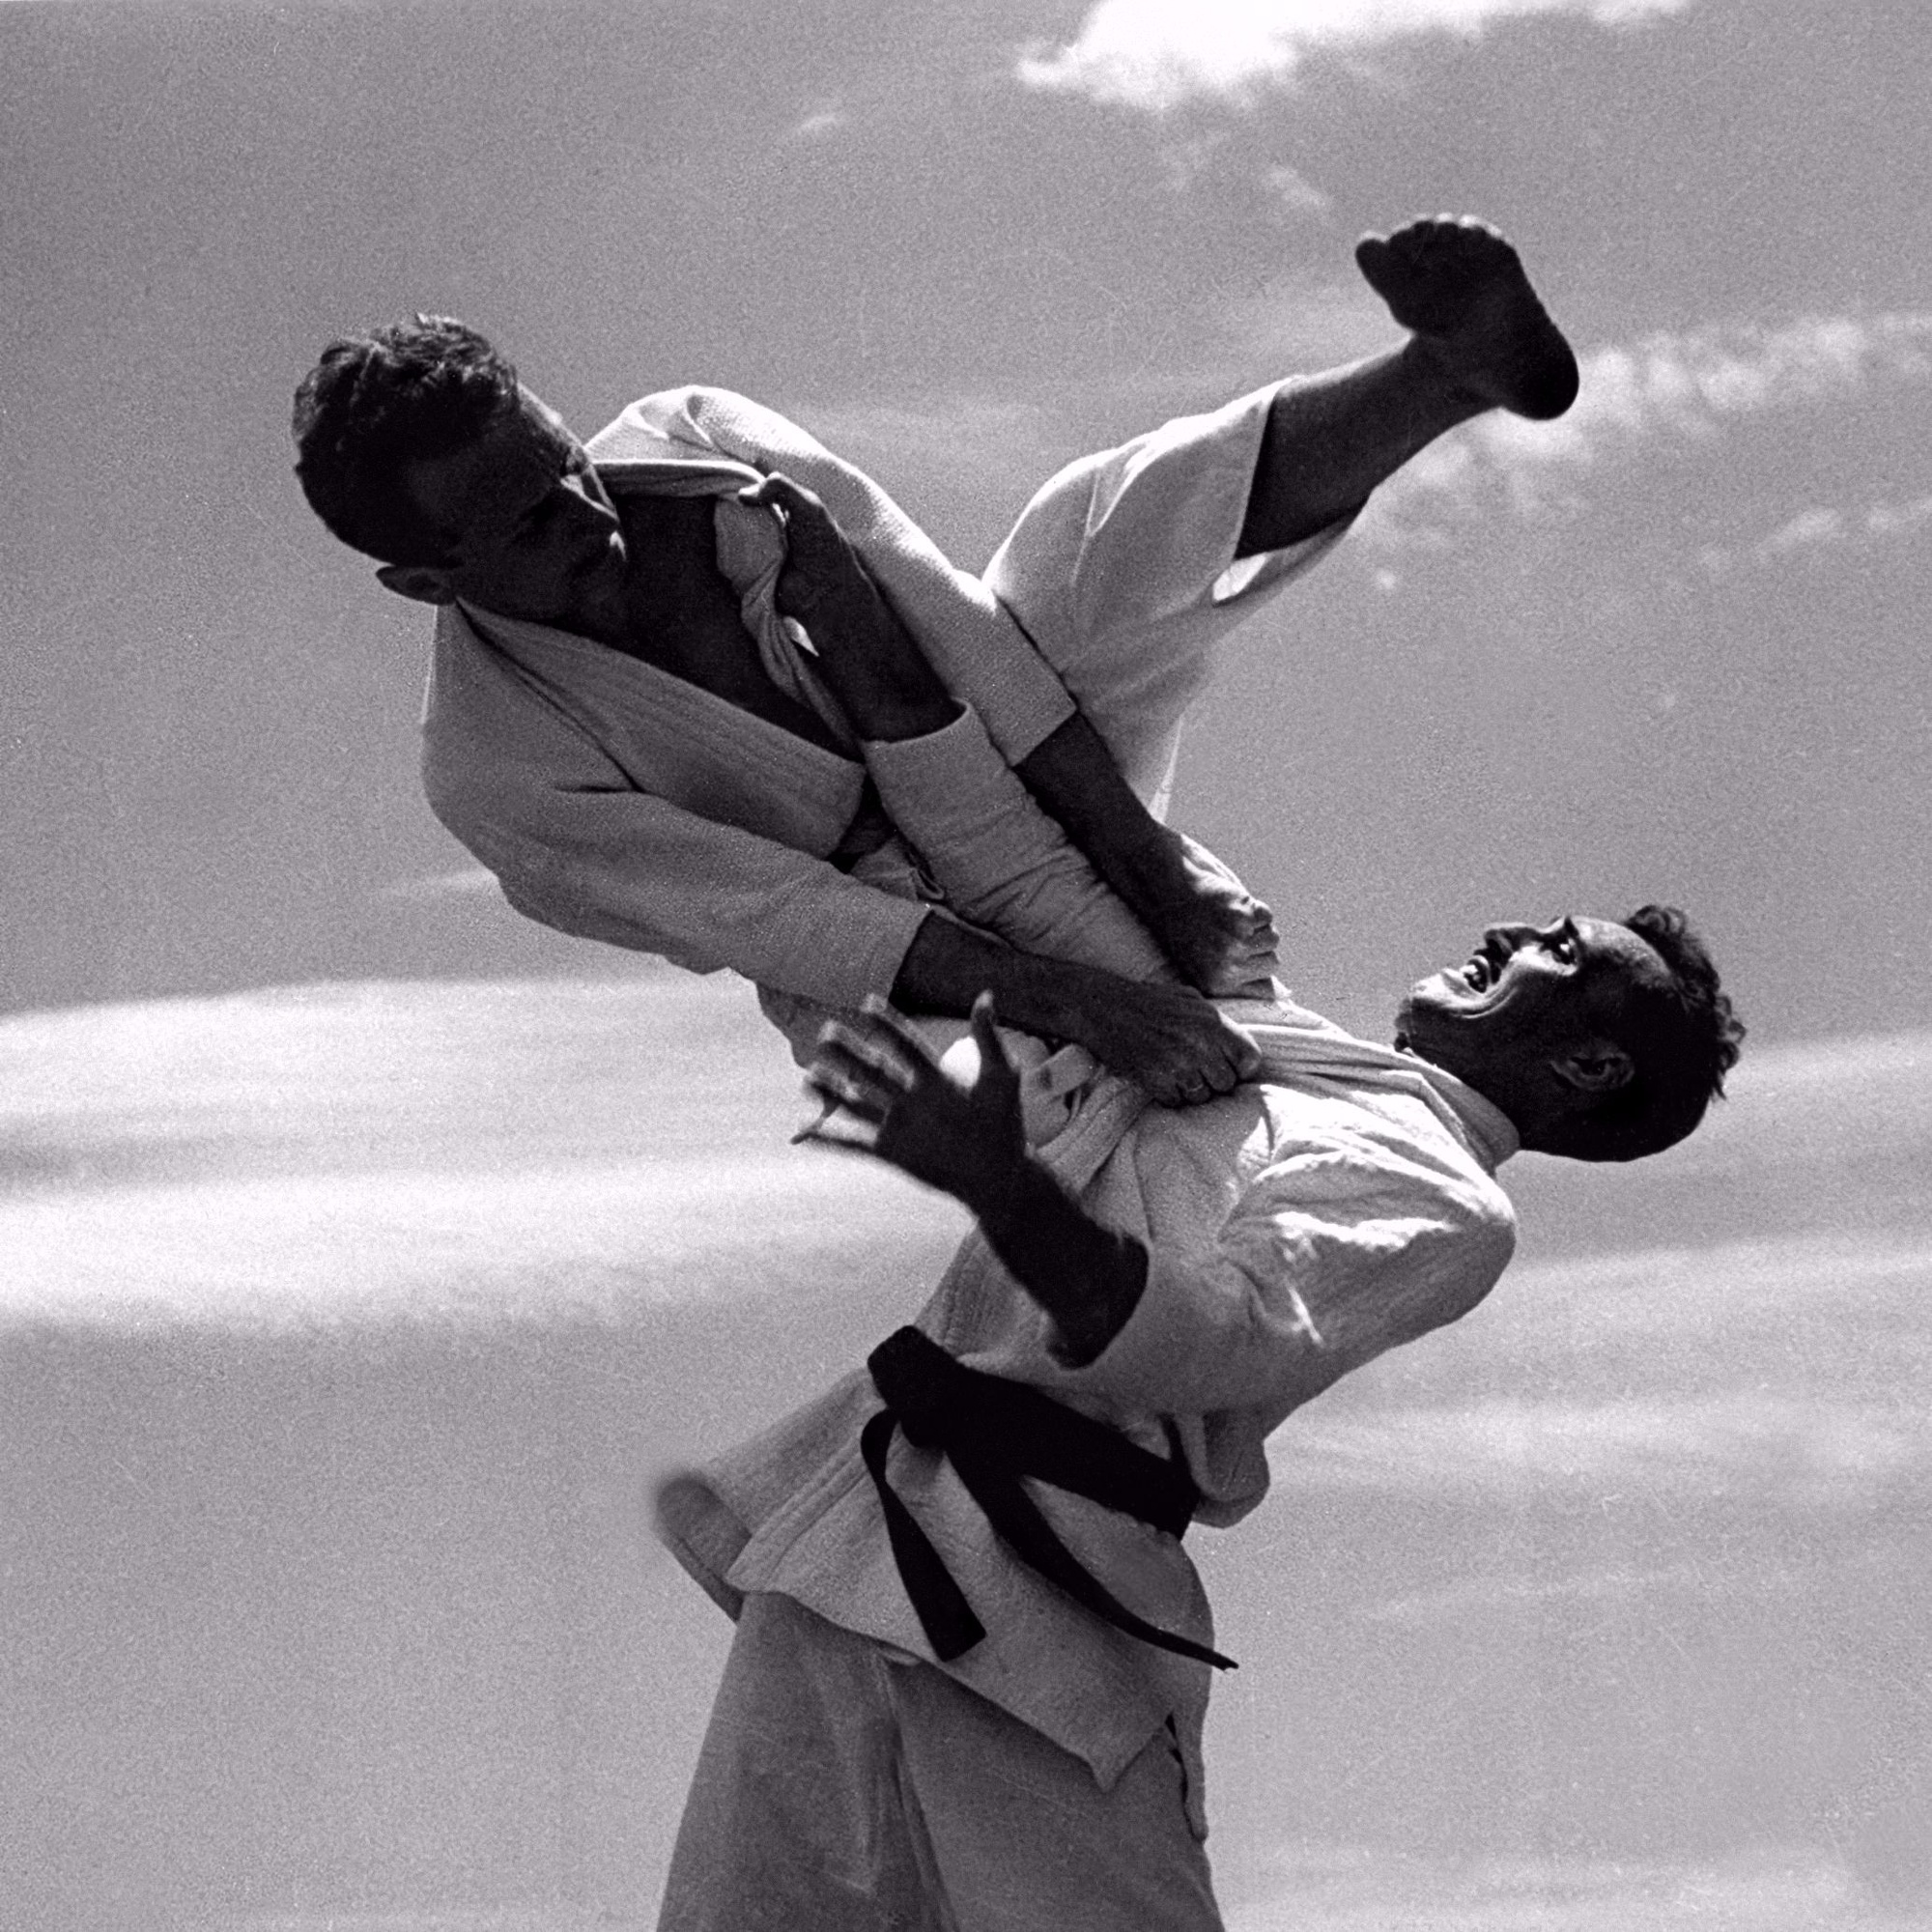 Brazilian Jiu-Jitsu Grand Master Carlos Gracie applies a flying armbar on his brother GM Helio Gracie on the 1960s. Under their leadership, BJJ became a powerful tool to help millions of people all over the world.